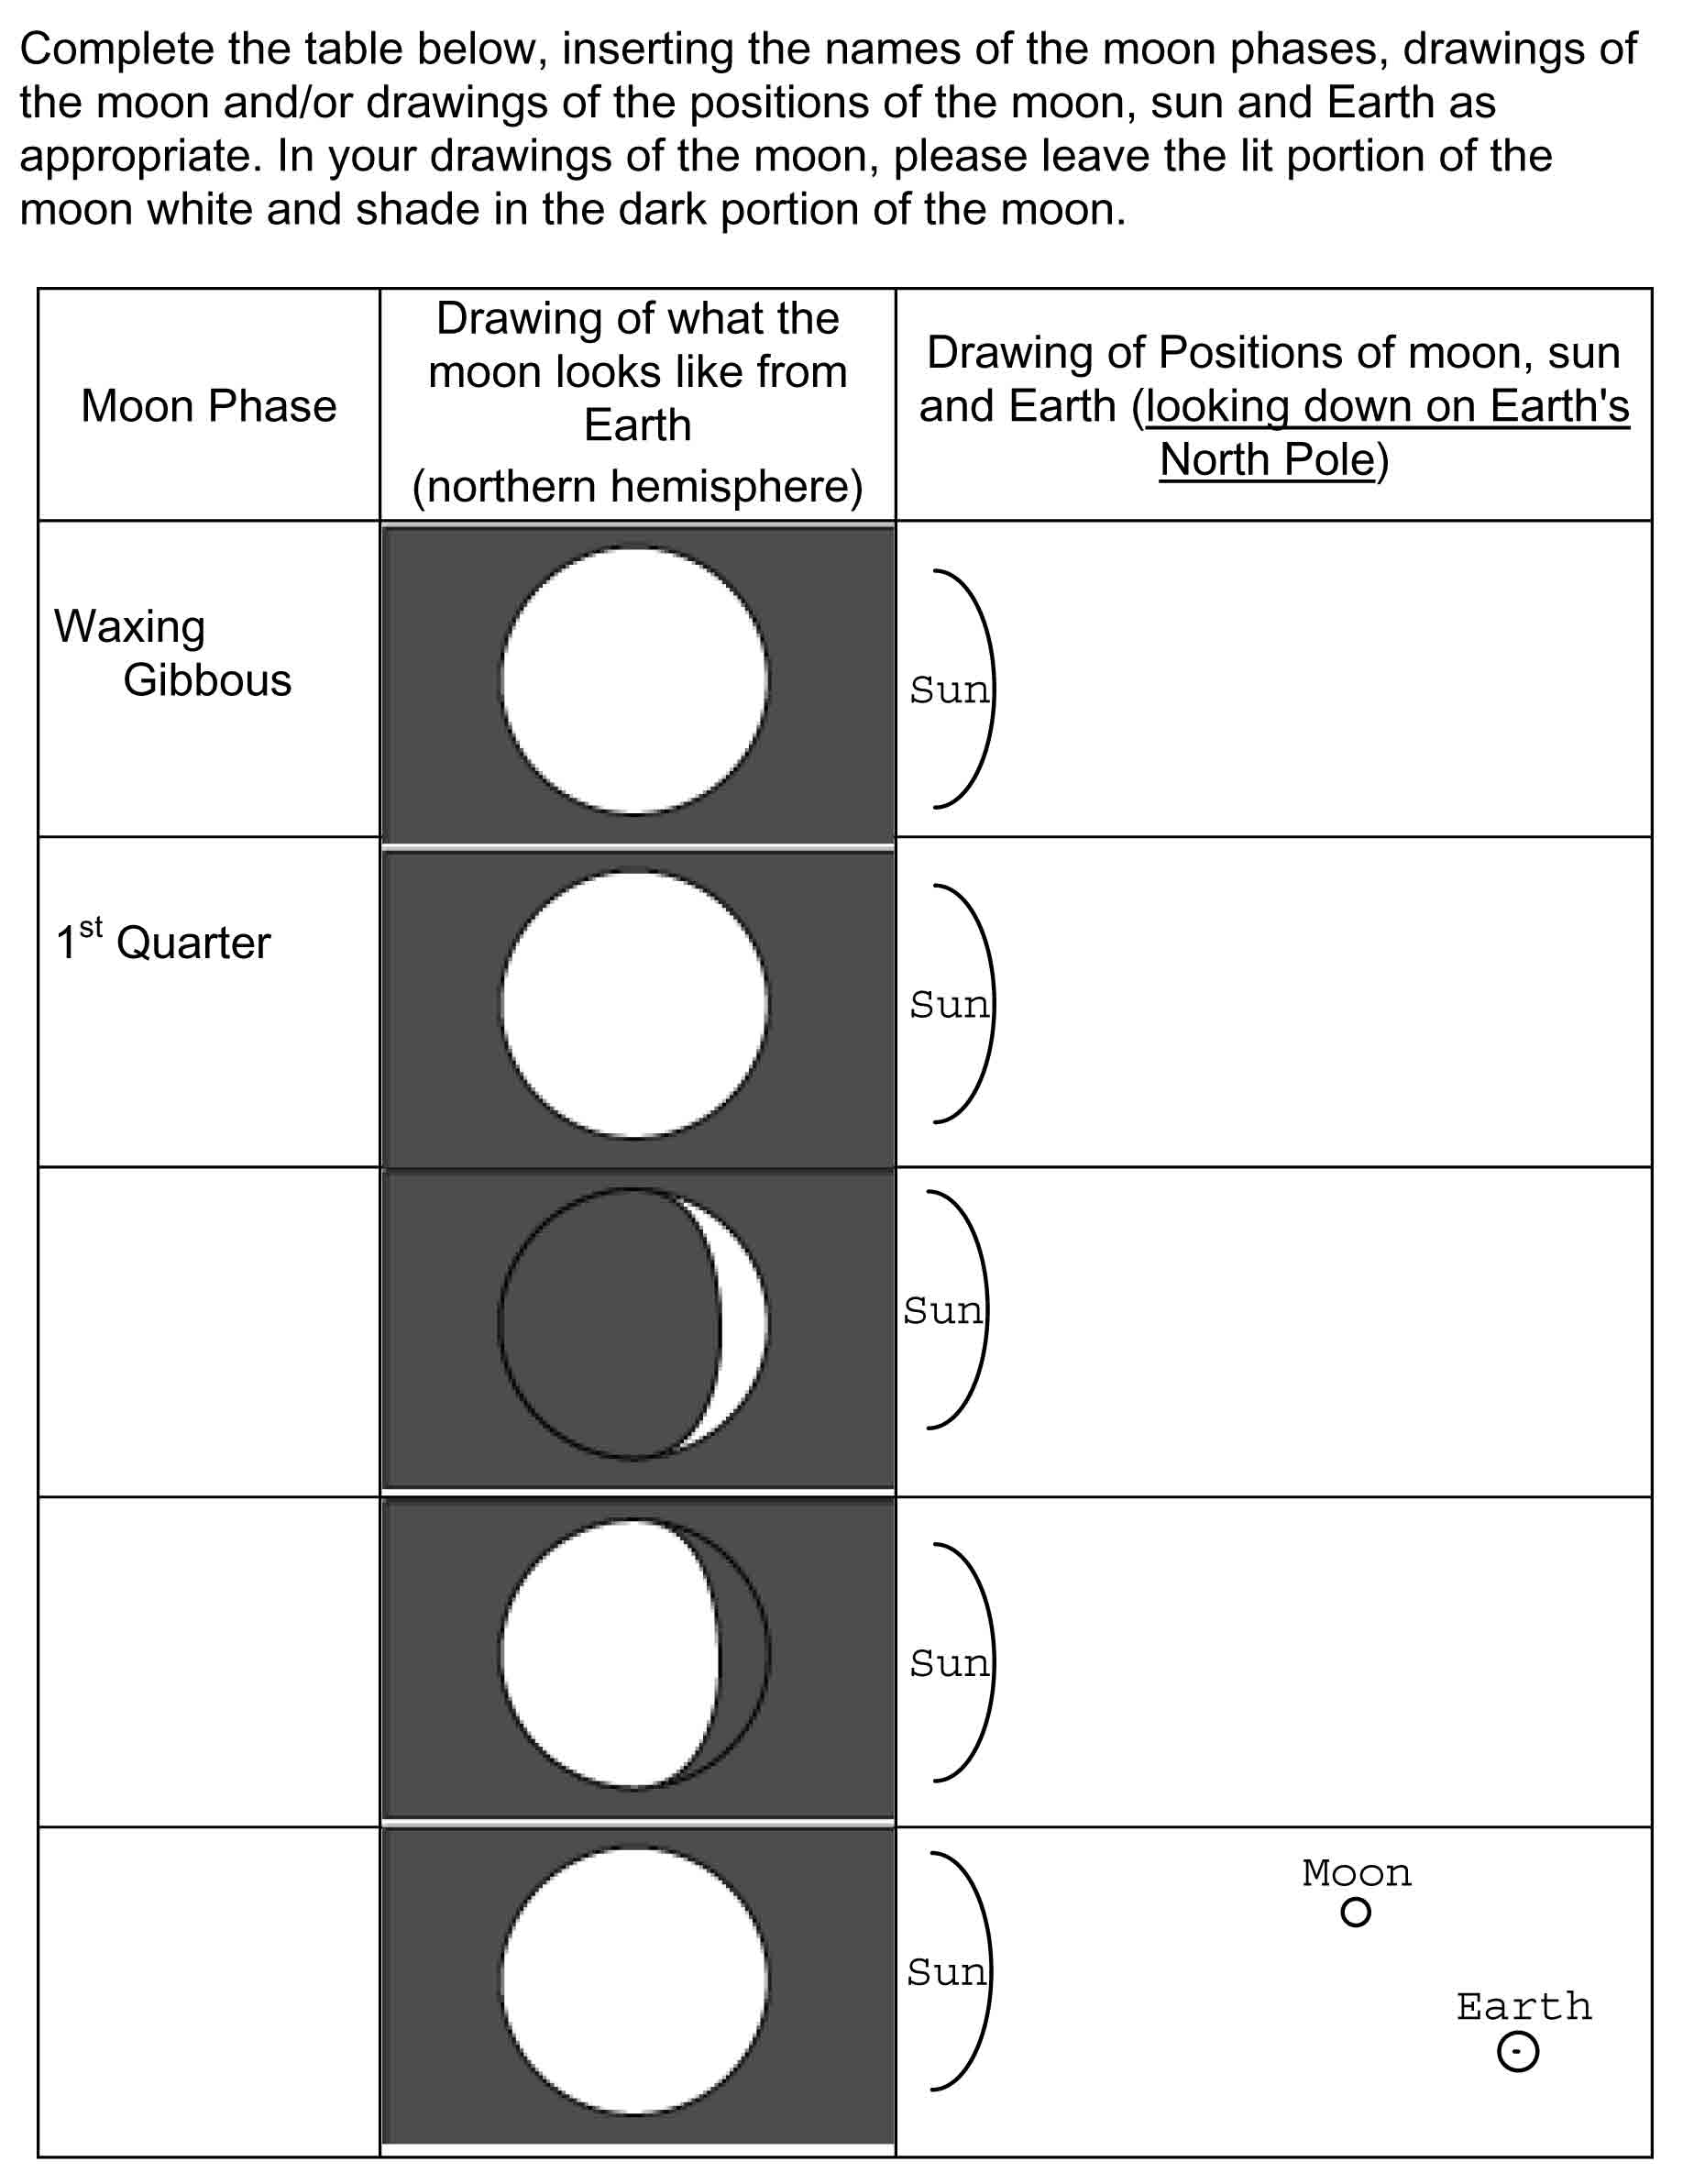 Moon Phases Worksheet Pdf Practice exam moon question